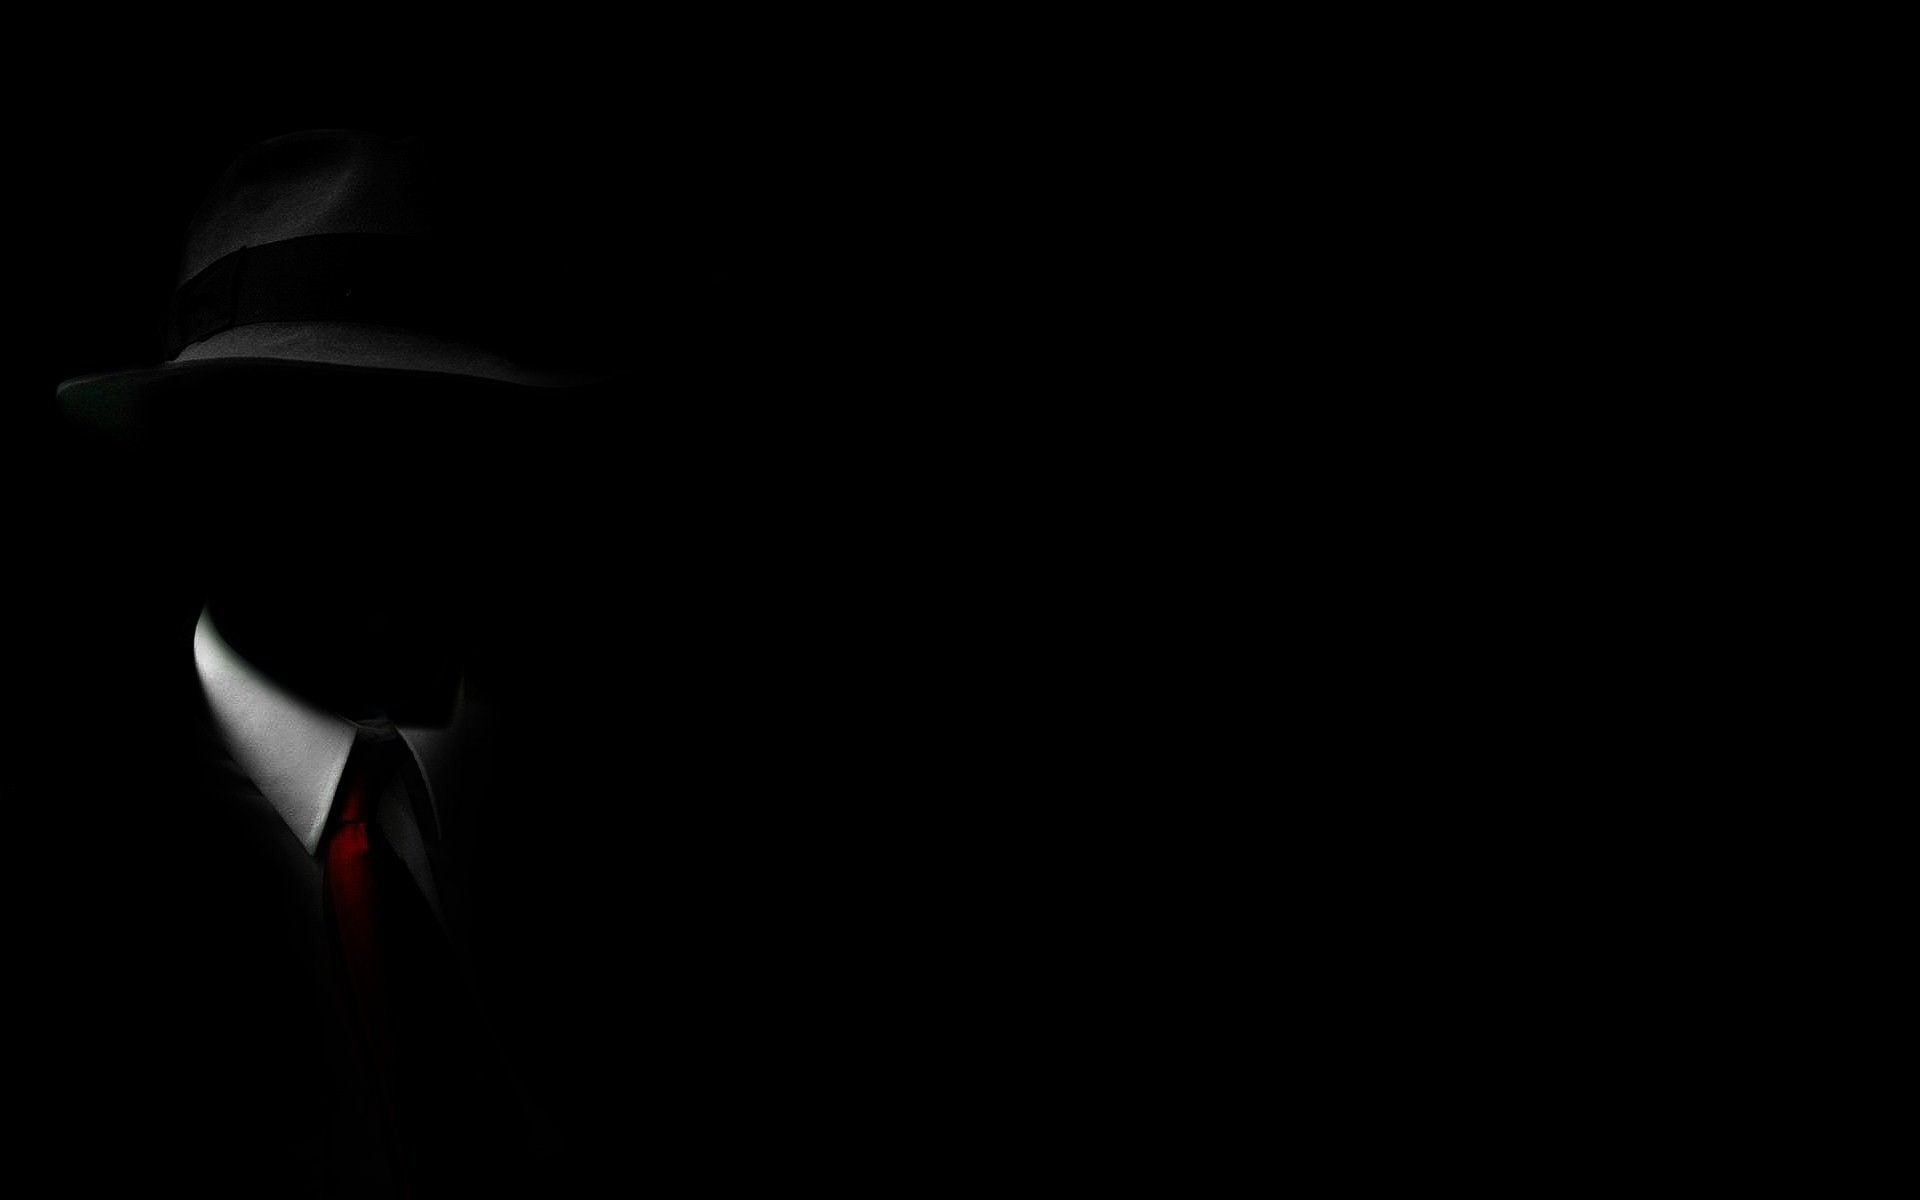 1920 x 1200px gangster backgrounds for desktop hd backgrounds by Jaylyn  Brian